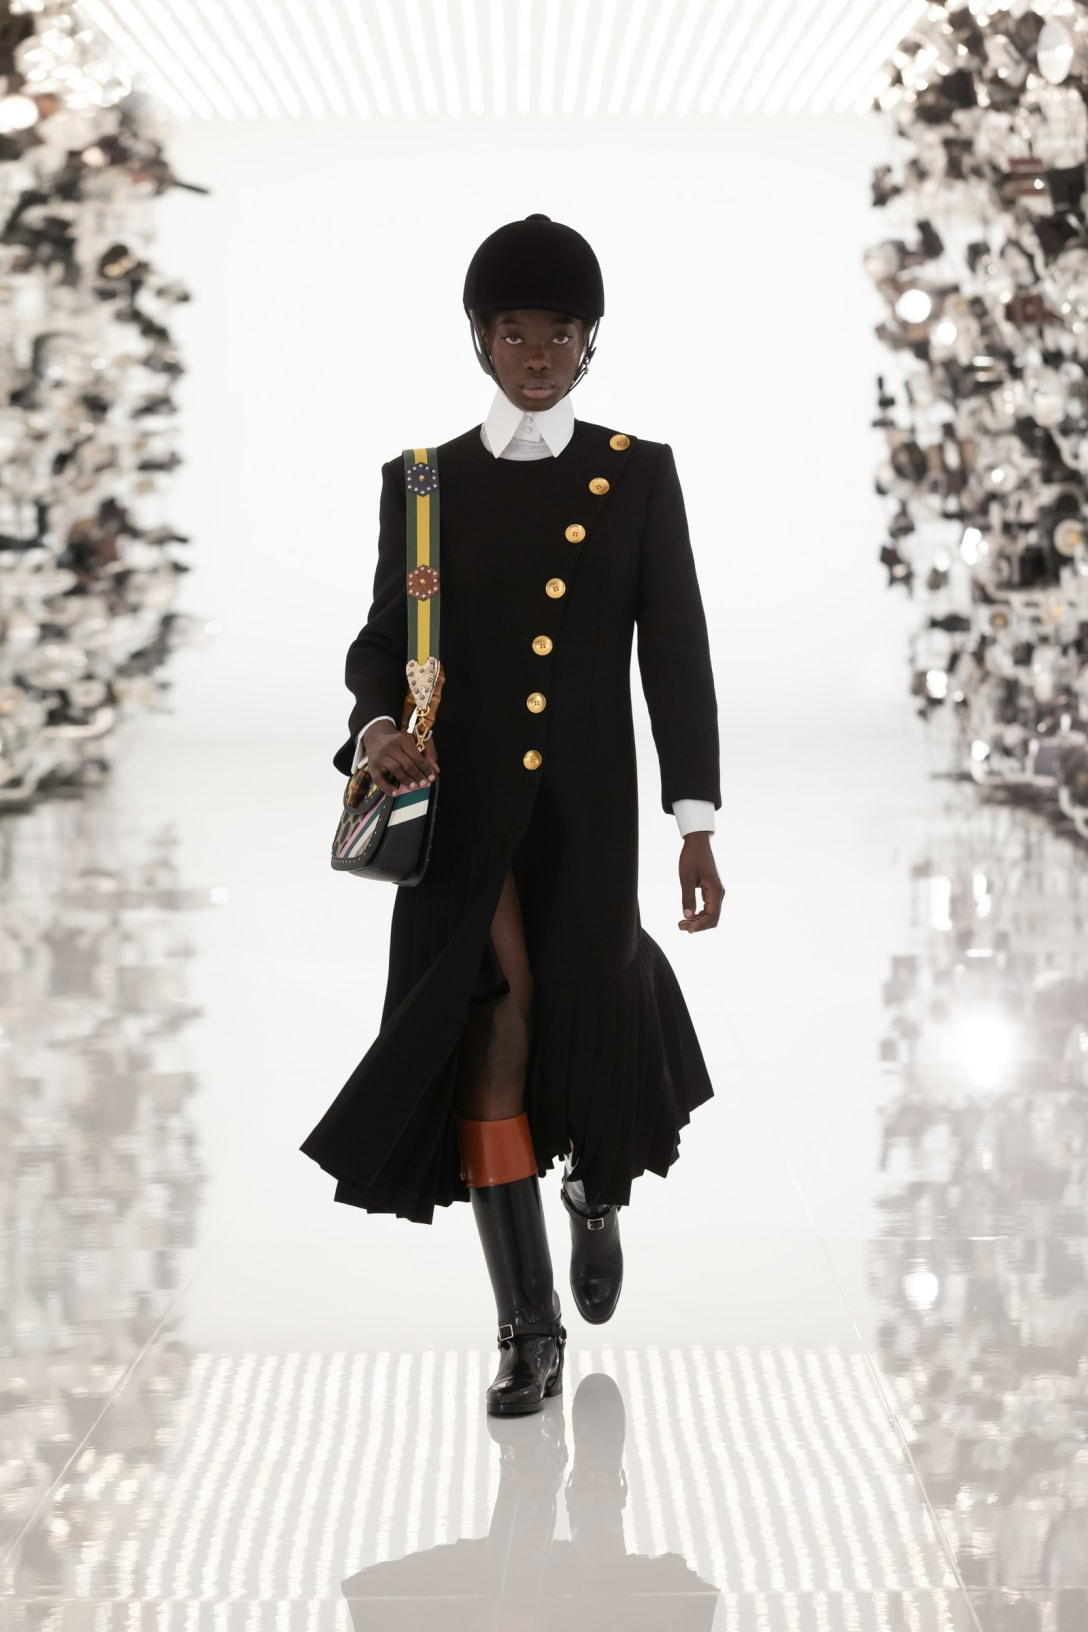 Image by Courtesy of Gucci